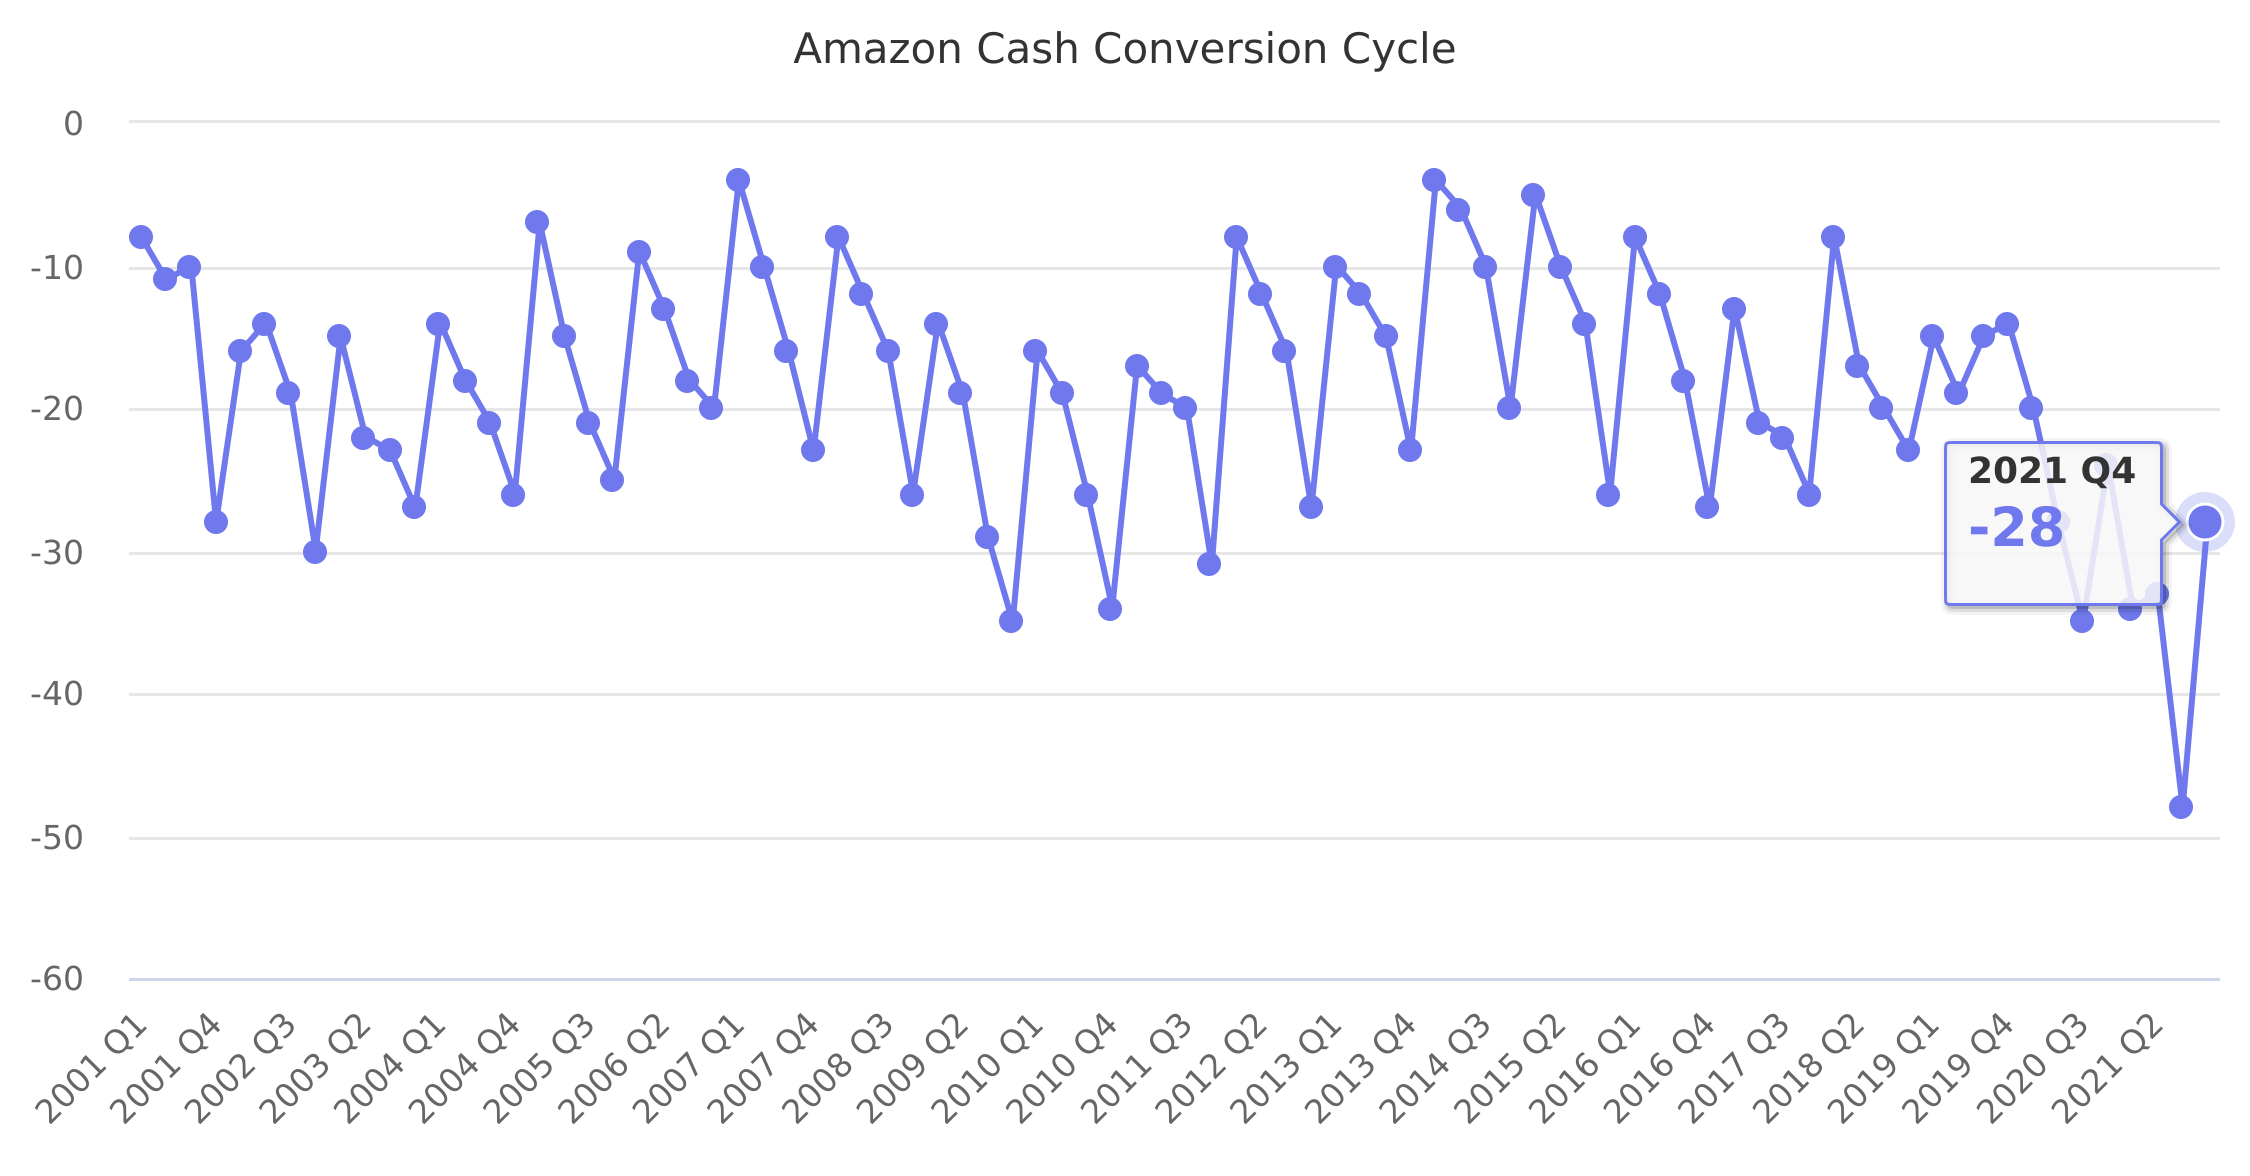 Amazon Cash Conversion Cycle 2001-2018